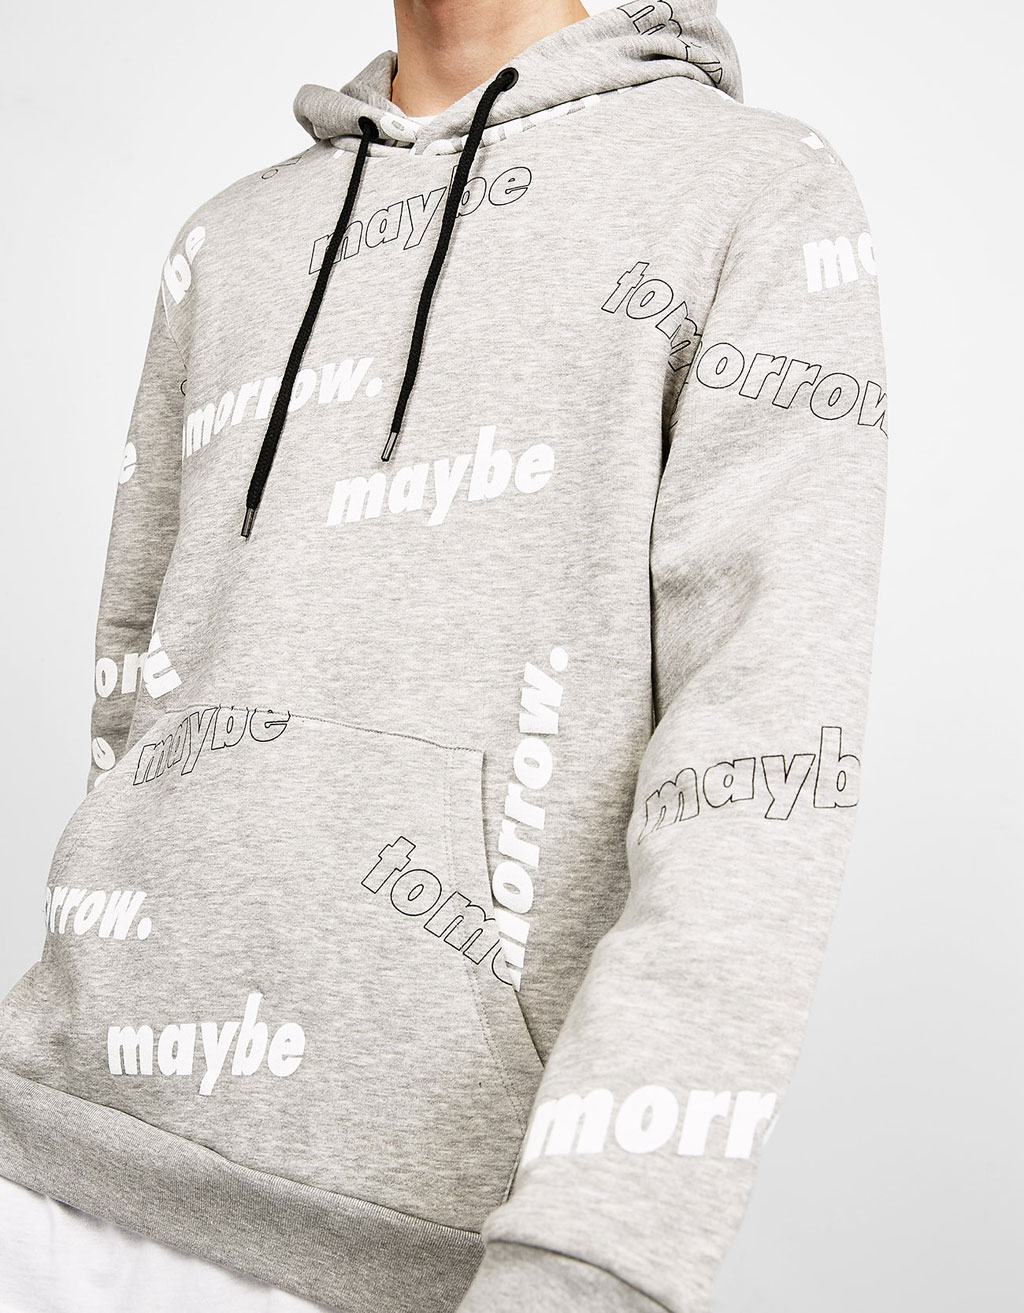 Maybe Tomorrow hooded sweatshirt